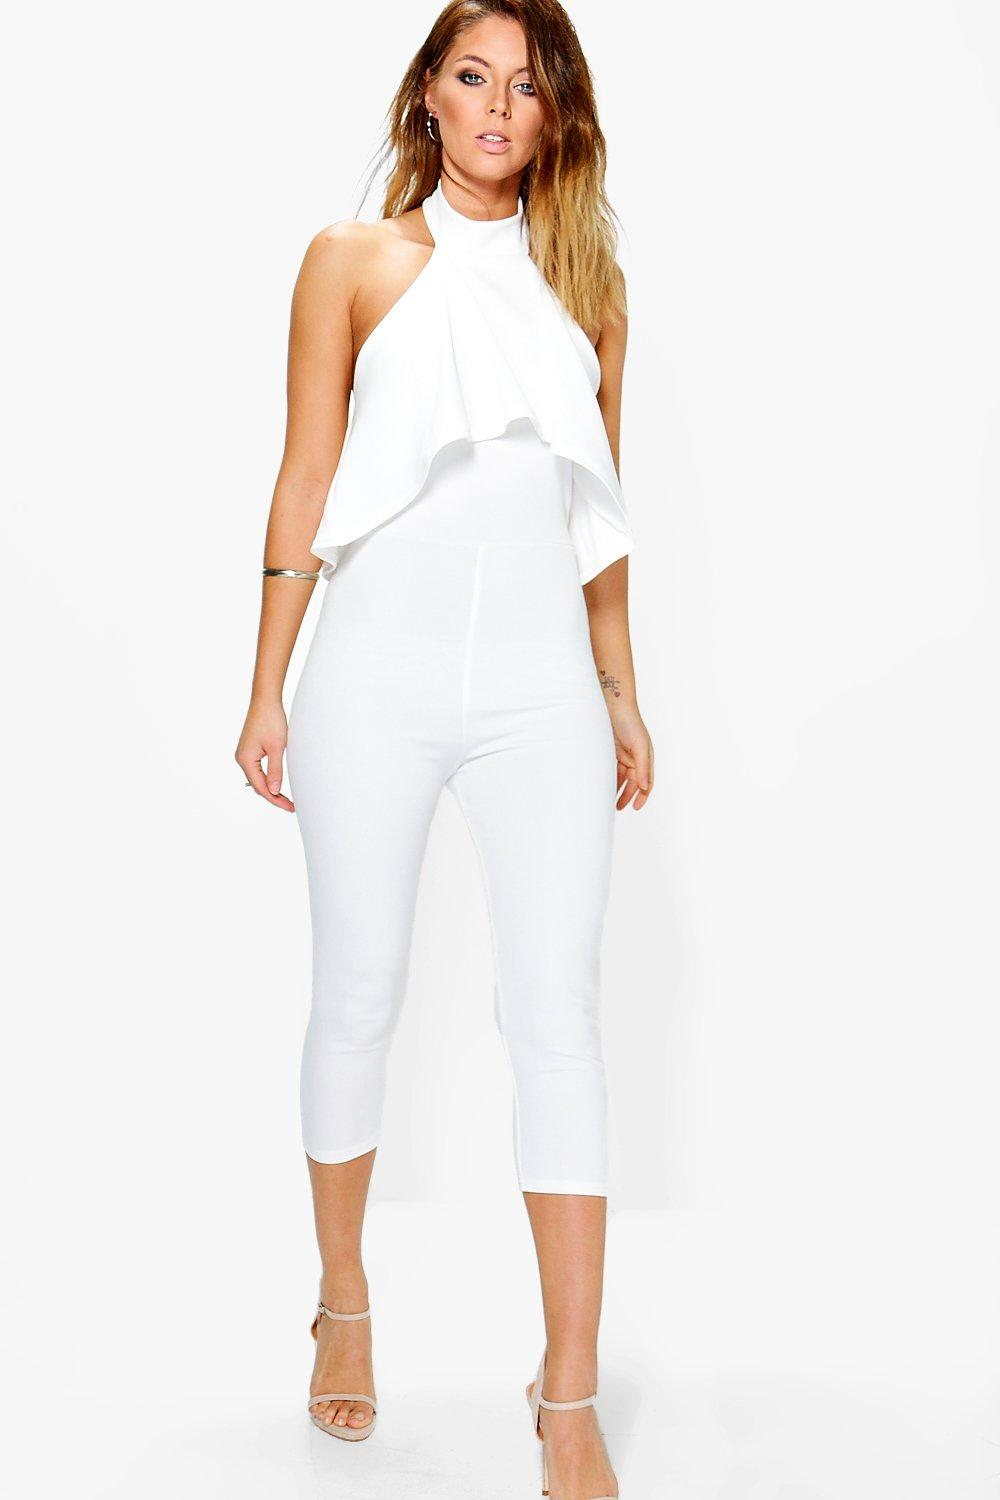 Shop for capri jumpsuits & rompers and other fashion products at ShapeShop. Browse our fashion selections and save today.